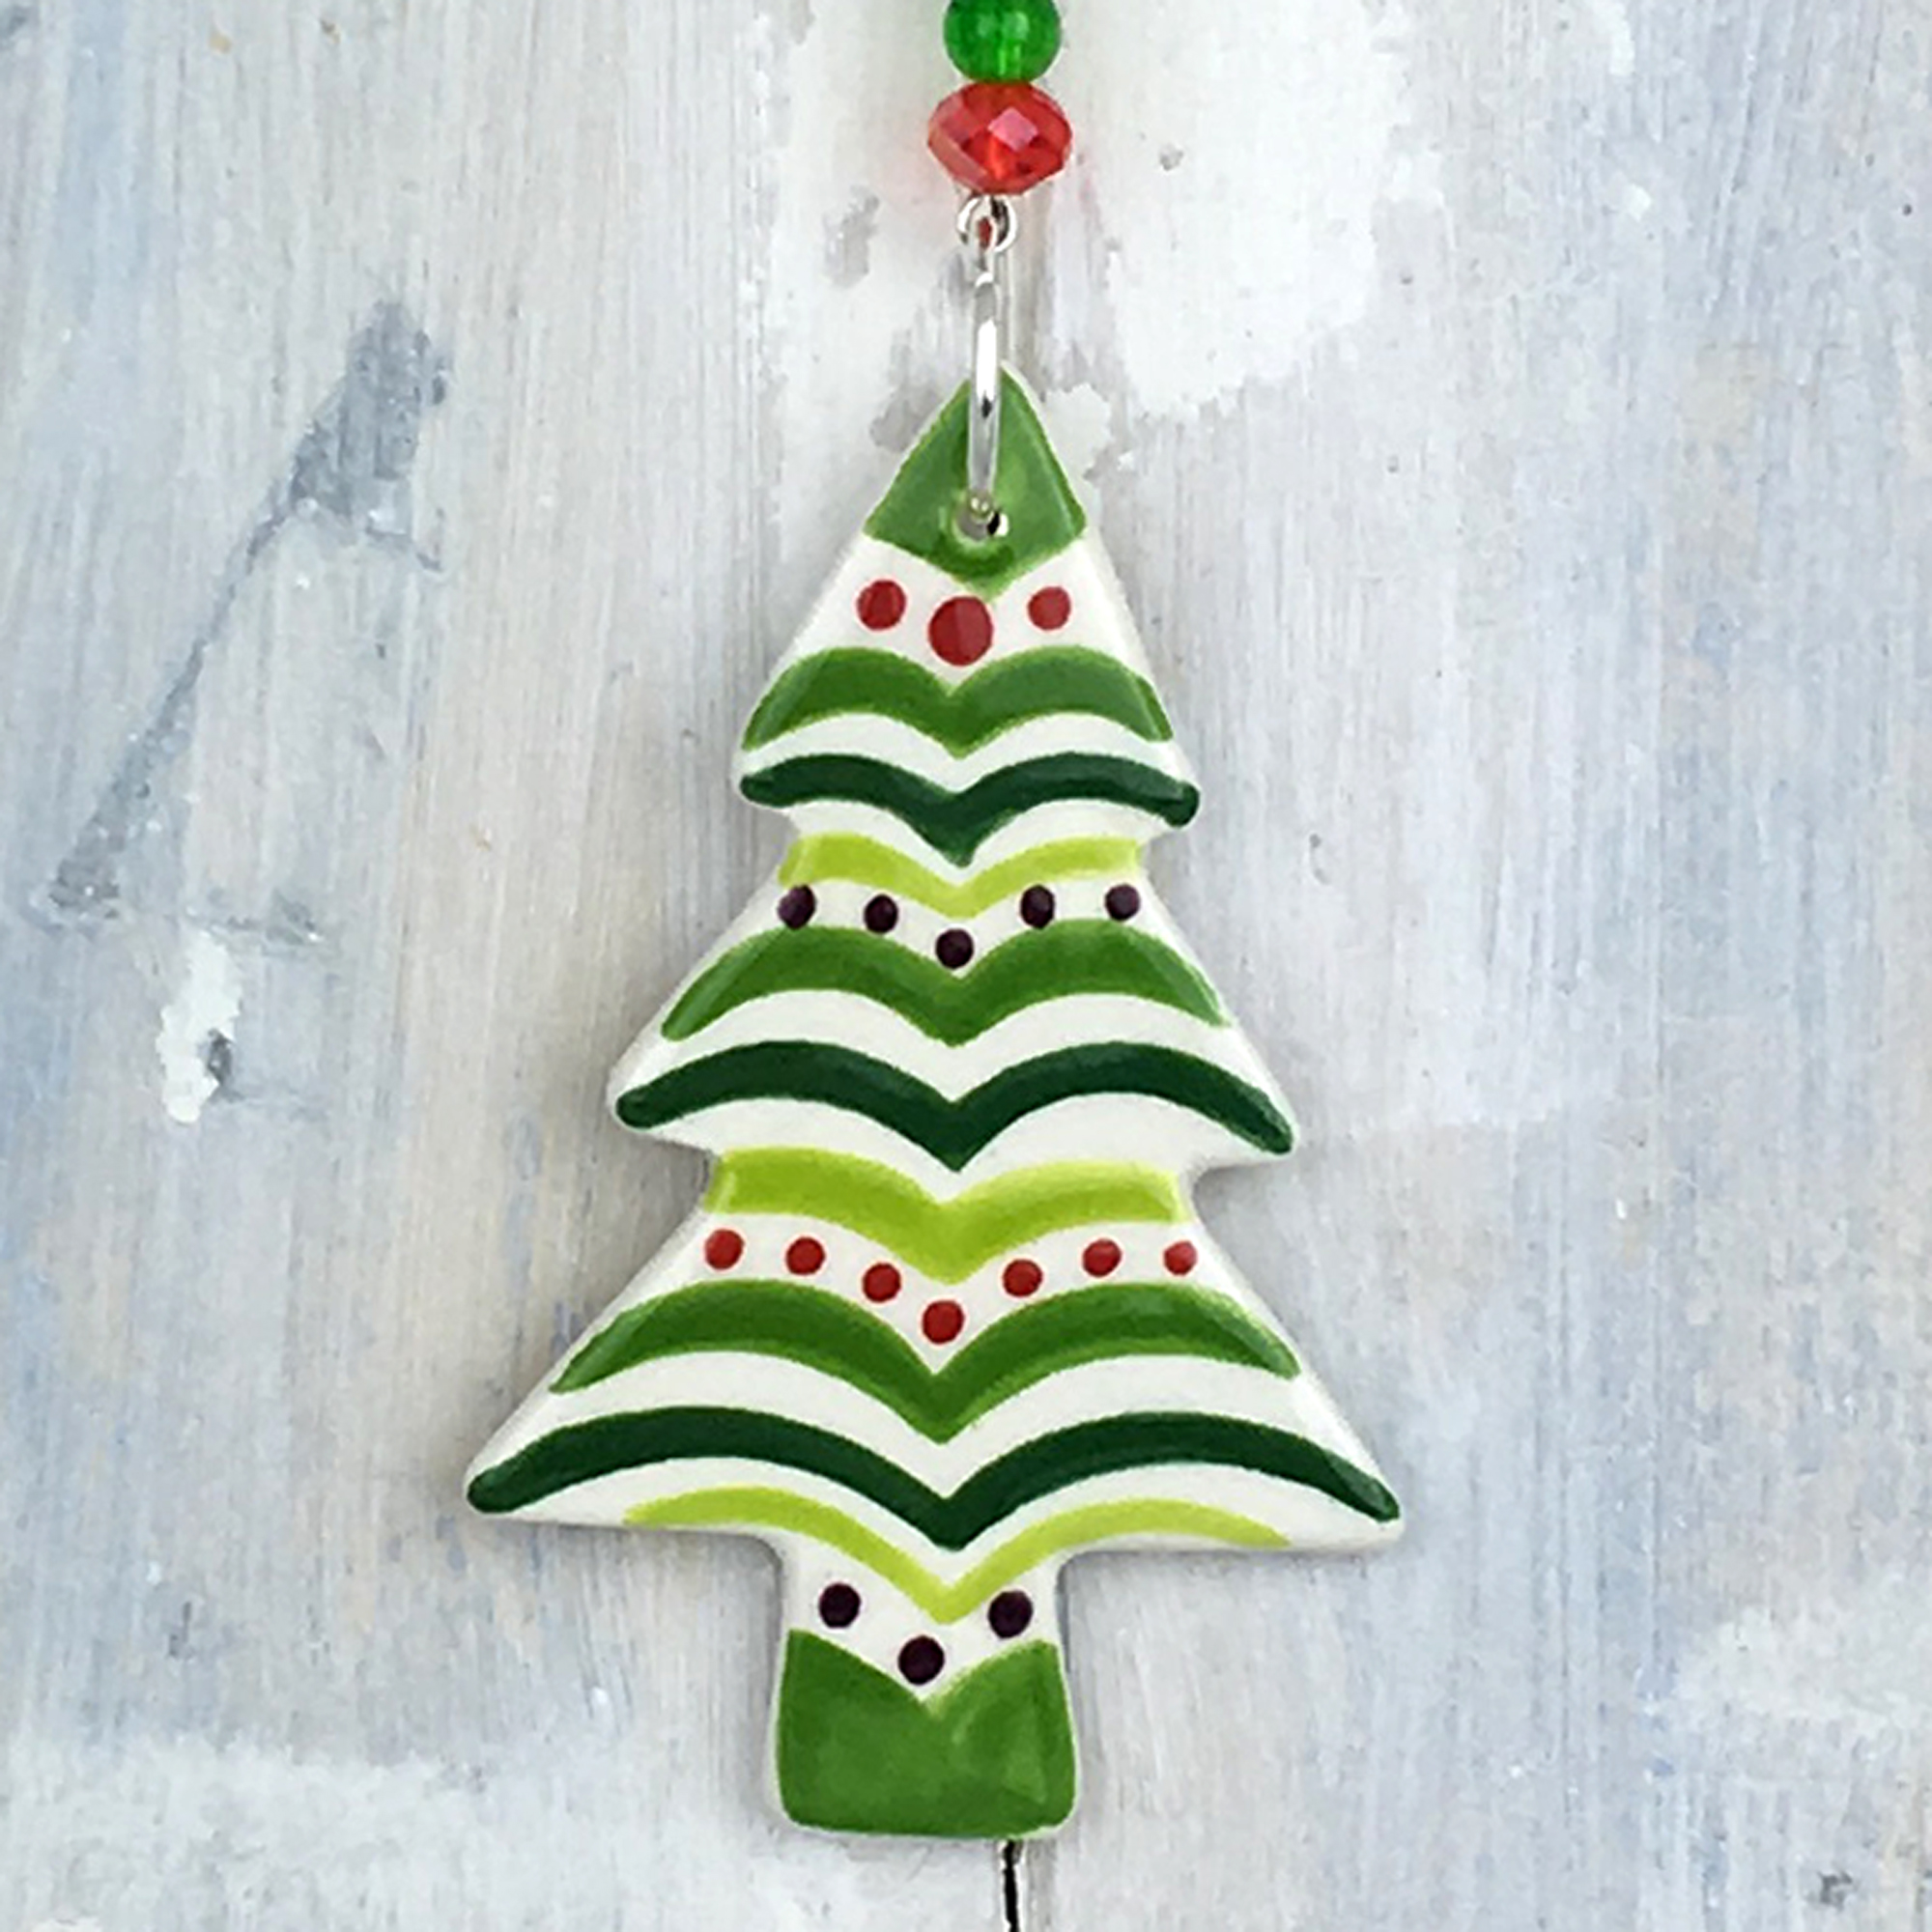 Multi Colour Christmas Tree 2019 Decoration Handmade In The Uk